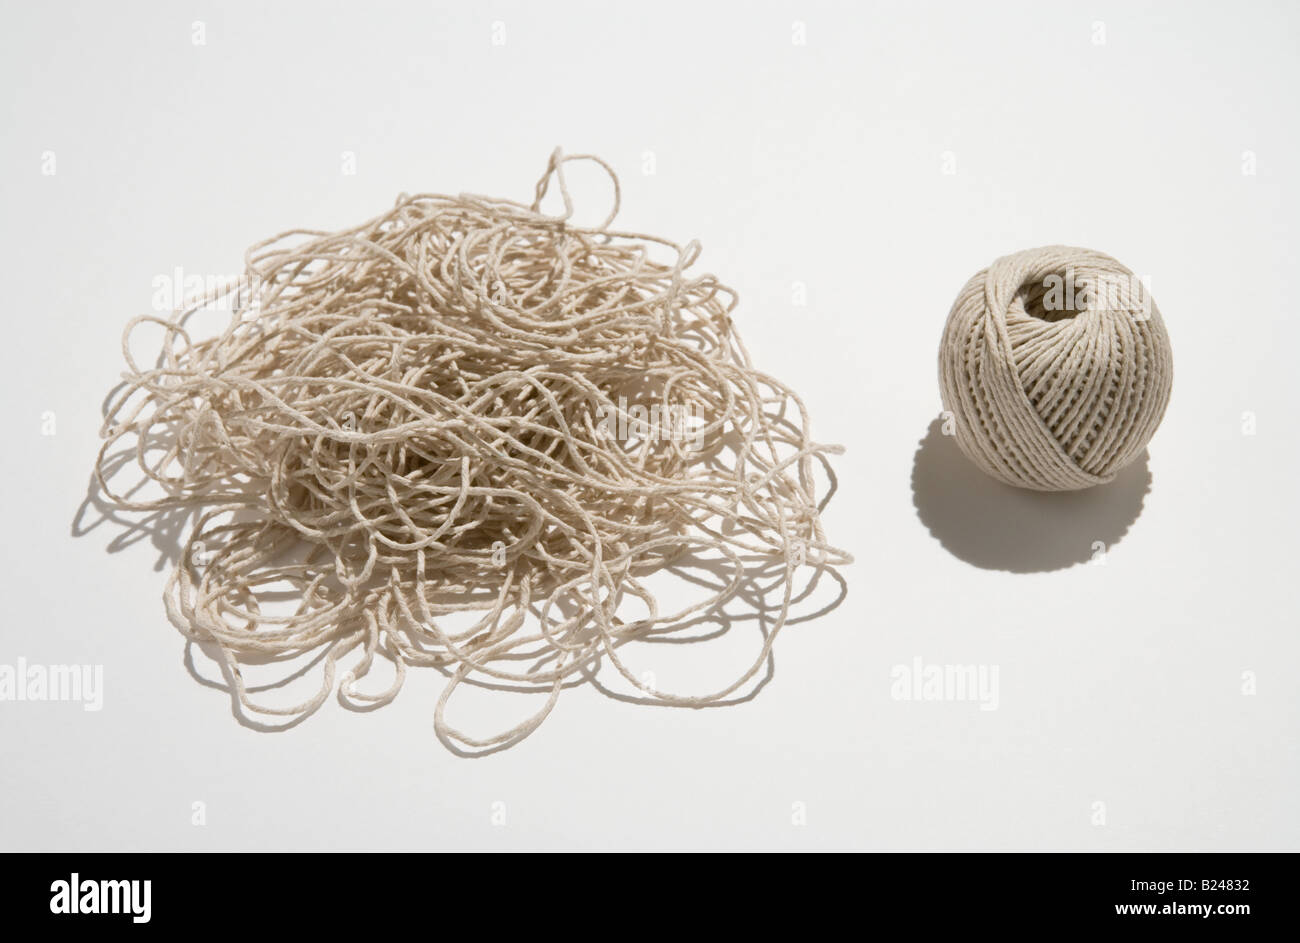 Ball and mound of twine - Stock Image